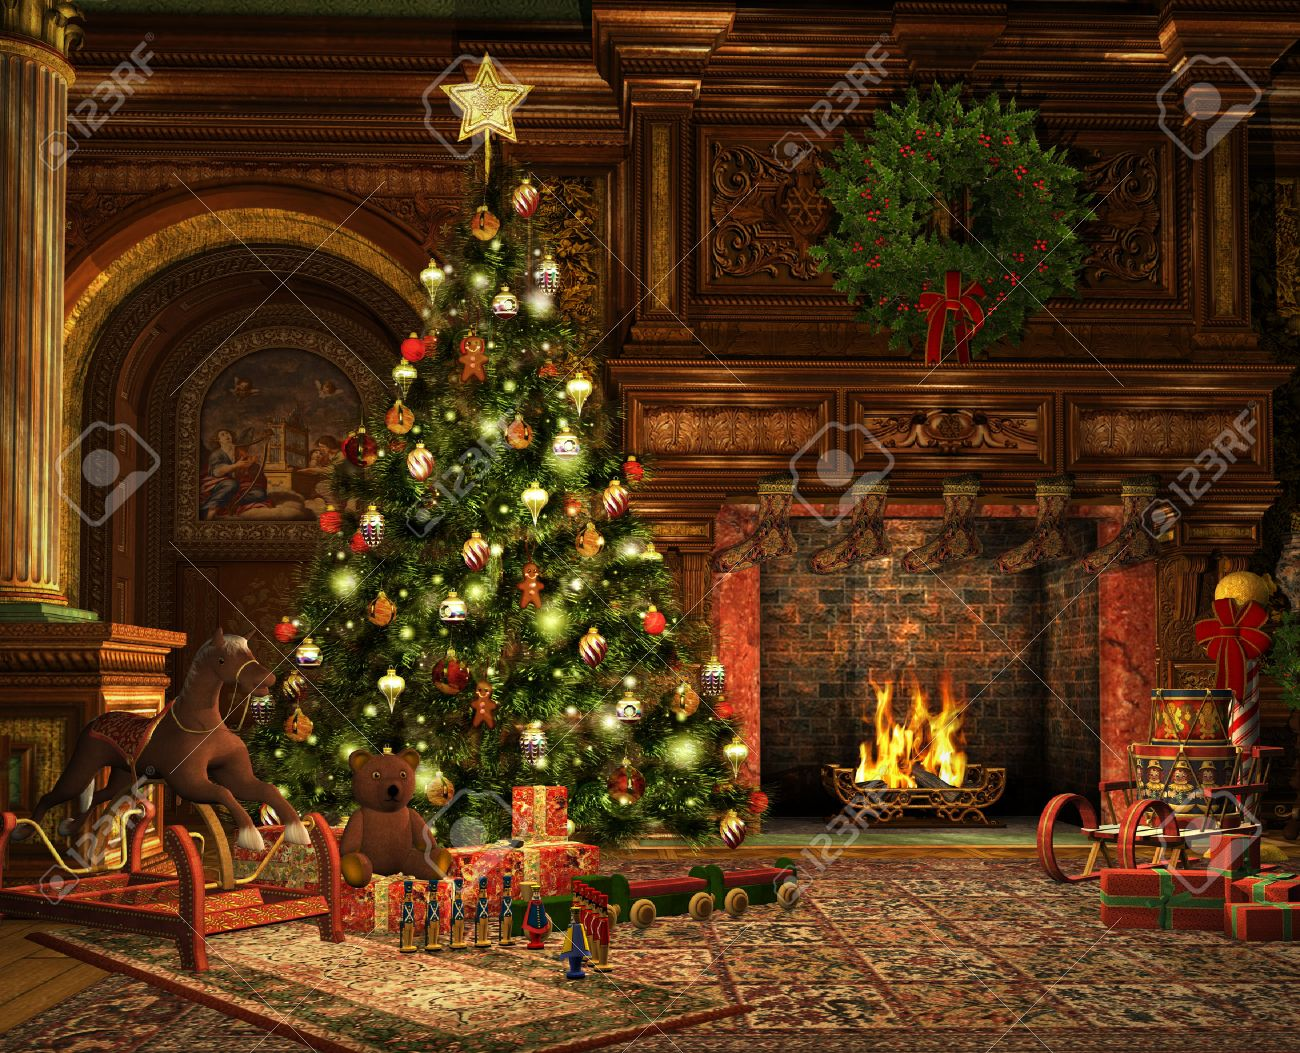 Living Room Decorations For Christmas Christmas Livingroom Magical Christmas Living Room Ideas Archives